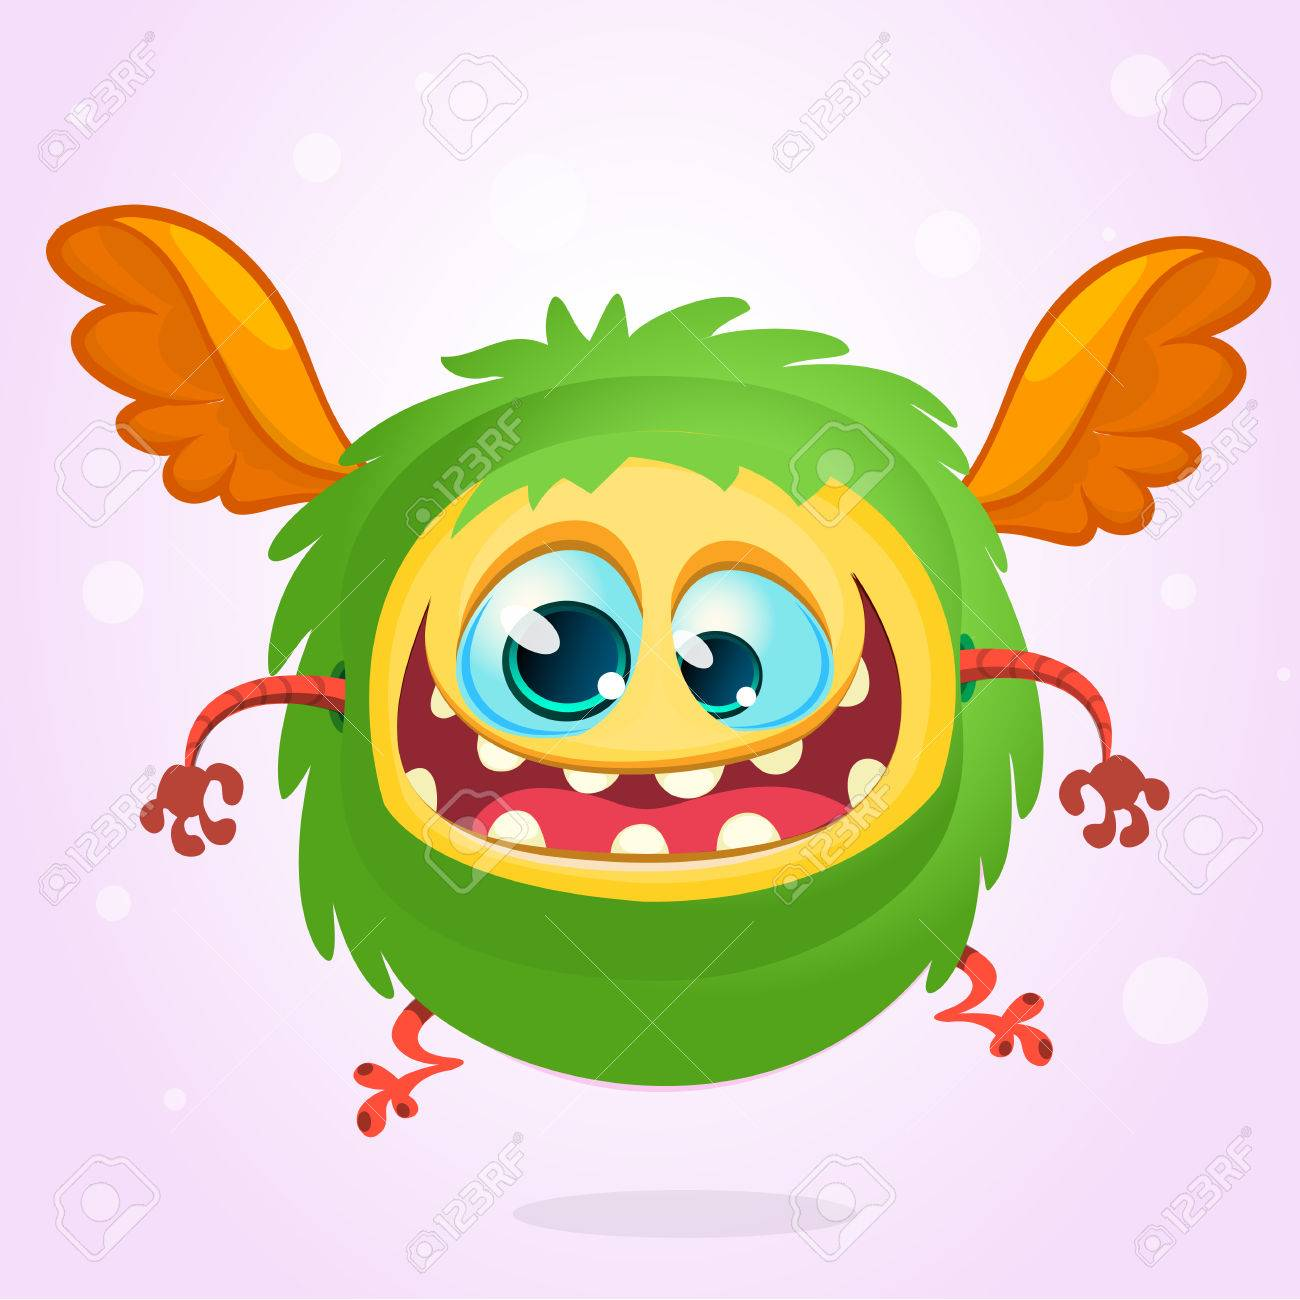 Cute Cartoon Flying Monster Halloween Vector Fluffy Green Monster Royalty Free Cliparts Vectors And Stock Illustration Image 61770183